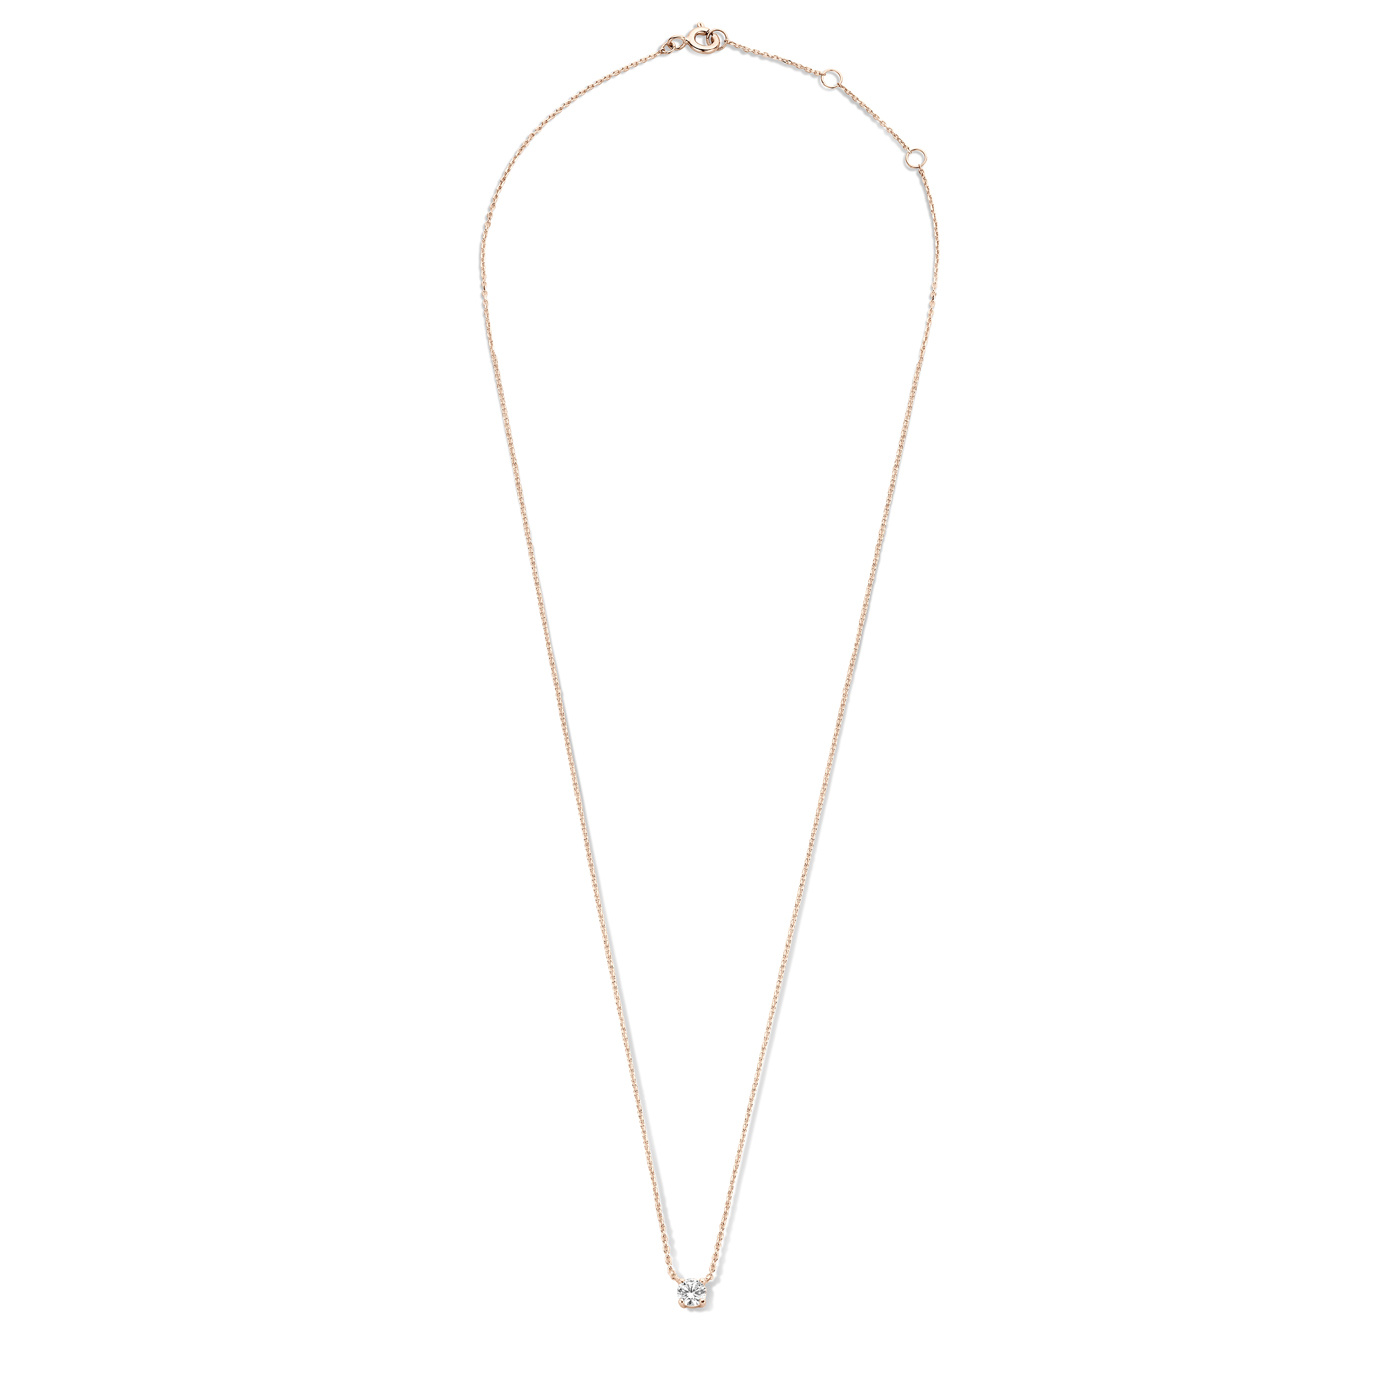 Isabel Bernard La Concorde Axelle 14 carat rose gold necklace zirconia